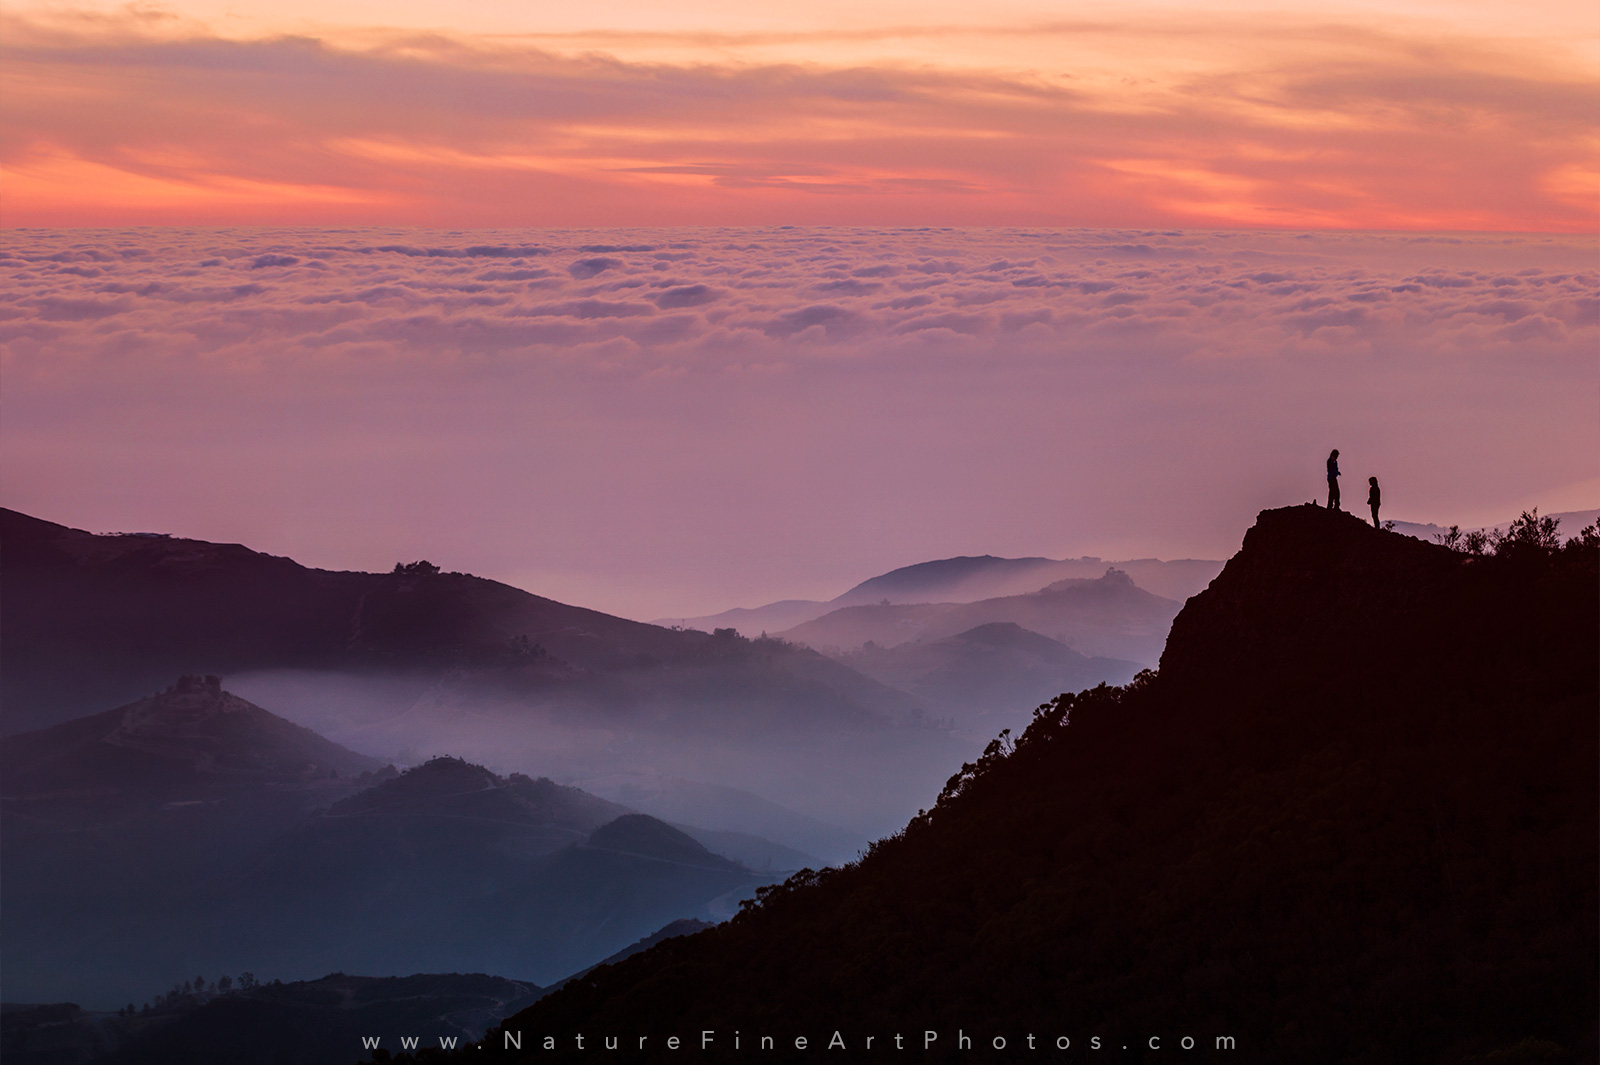 The Proposal at Sandstone Peak nature photo